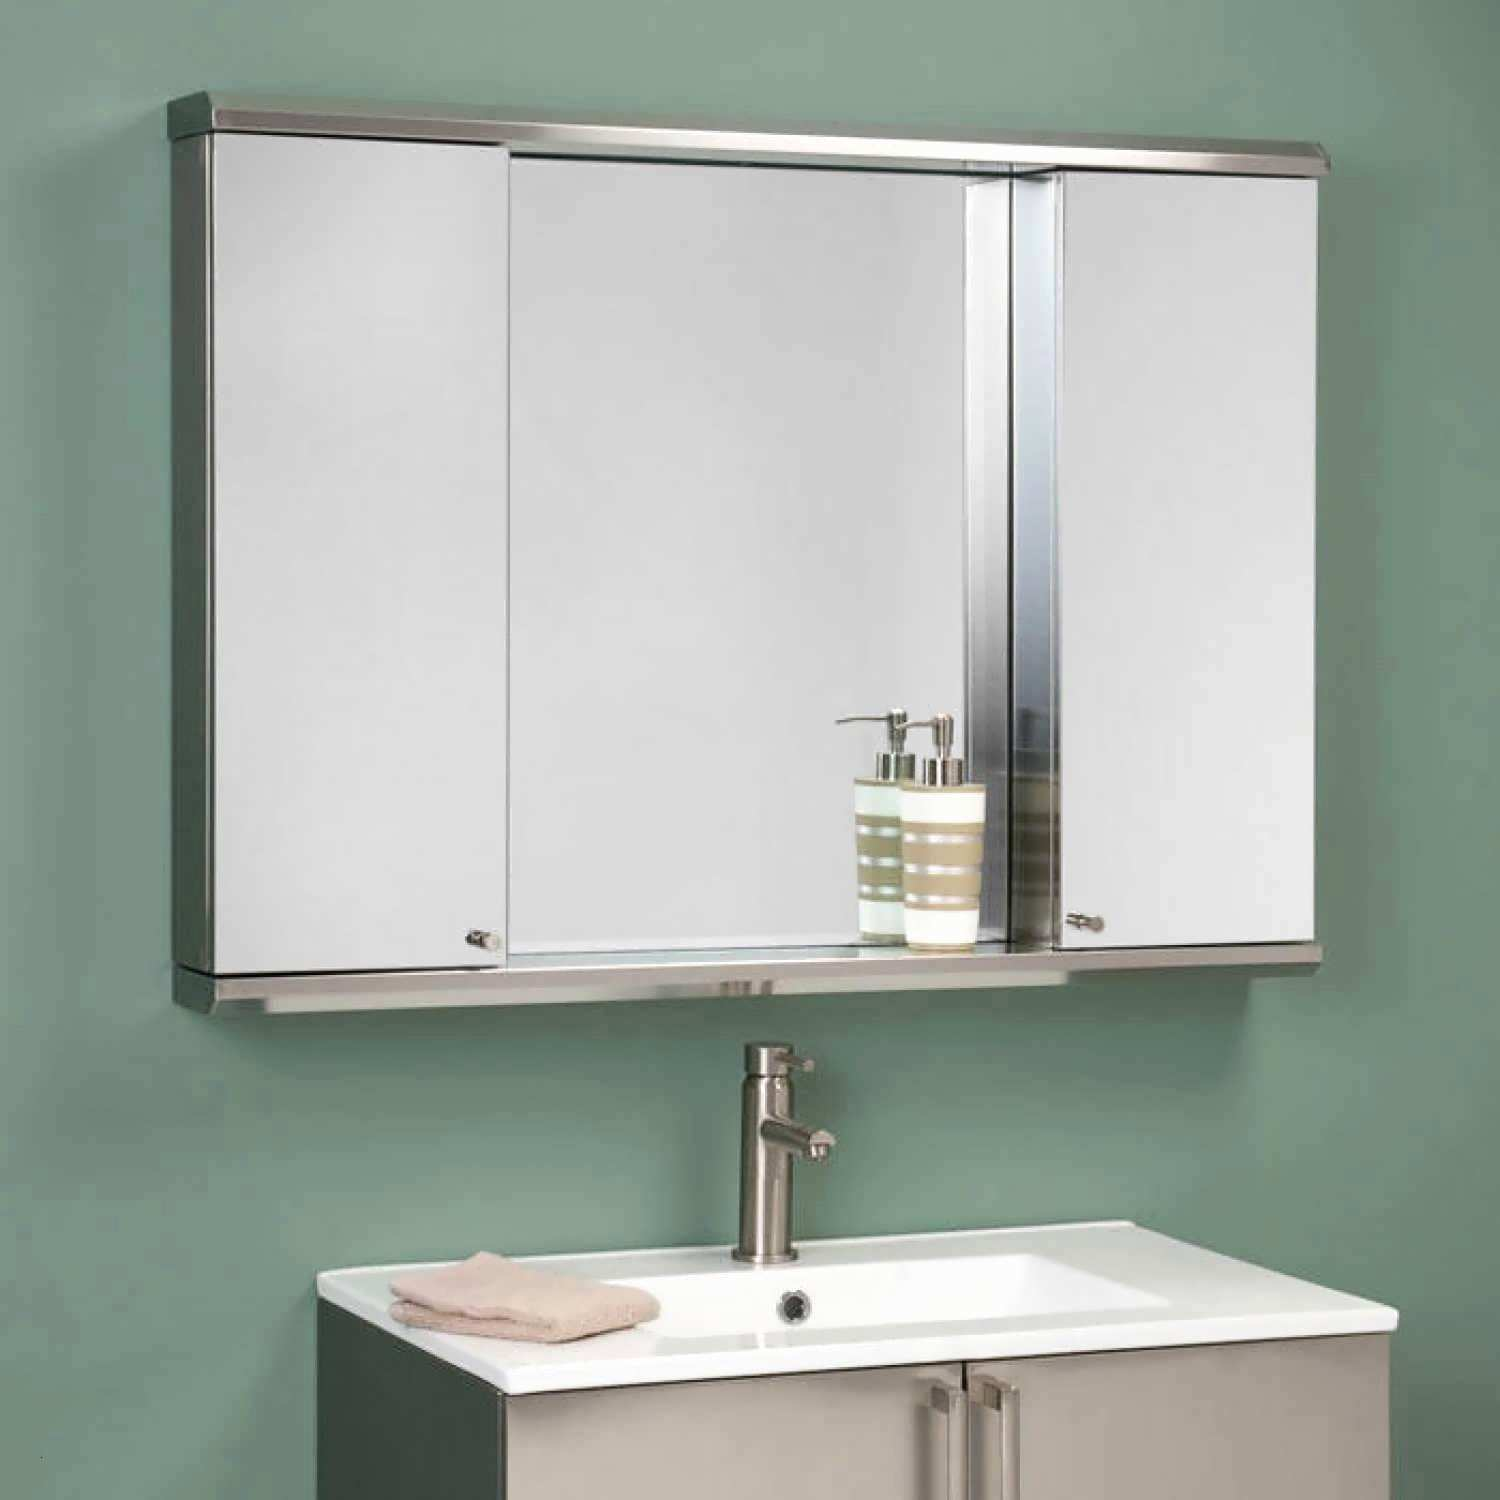 Large Standing Mirror Lovely Bathroom Mirror with Light Mirror Ideas